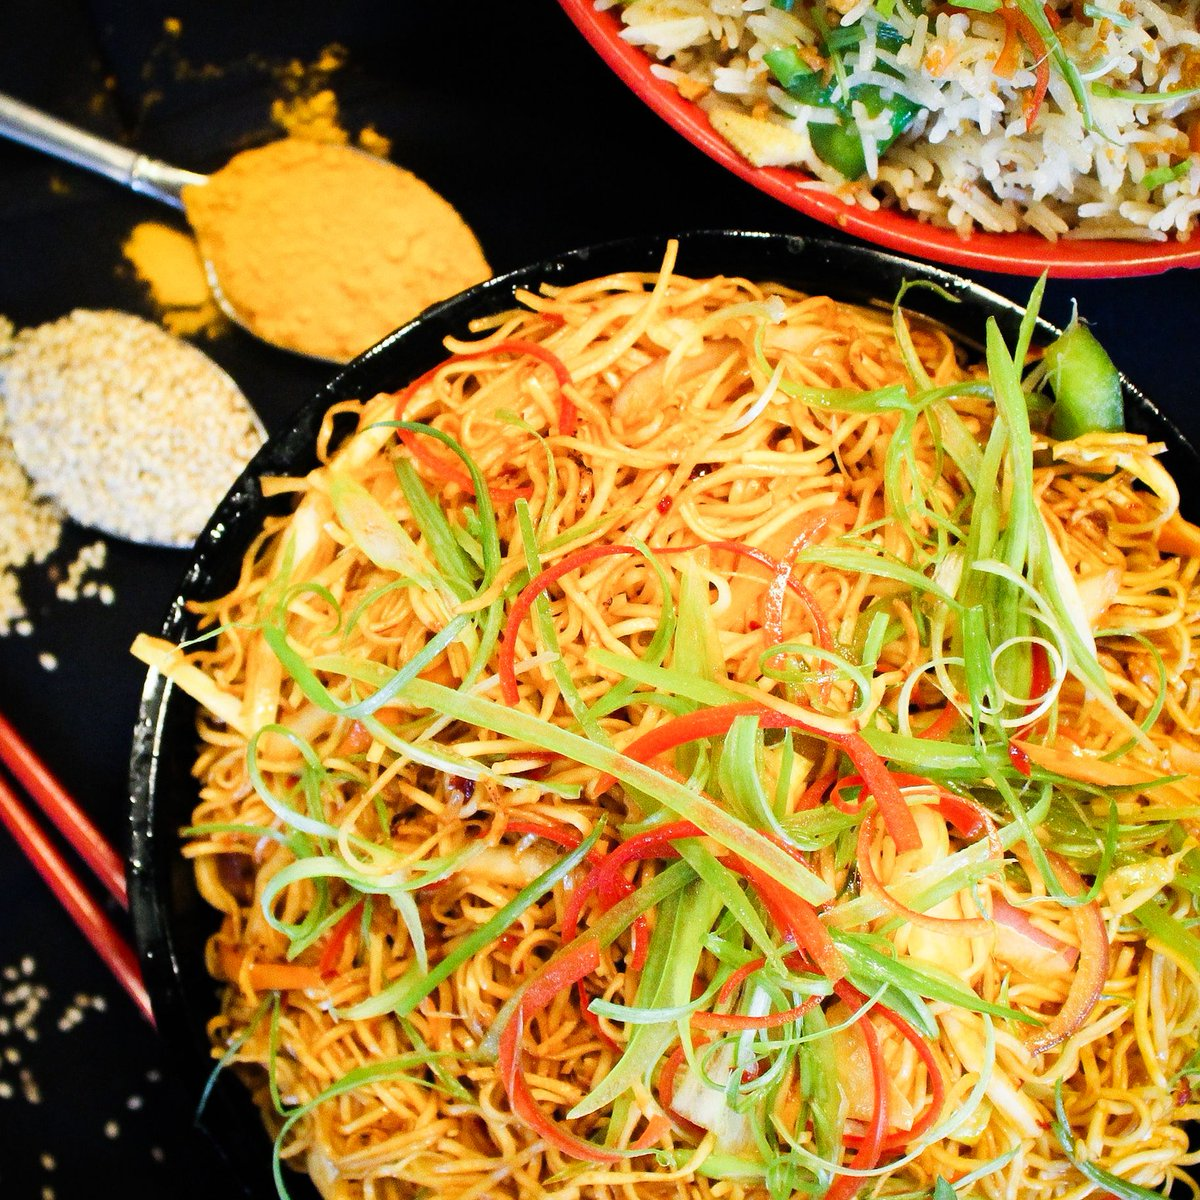 Never NOT thinking about noodles, hbu? 😍🥢  #bombaychopsticks #bombaychopsticksbyindiahouse #chicagorestaurants #Chicagoeats #Takeout #SaturdayVibes #NewSpecials #Monday #MondayMood #NapervilleIL #NapervilleBusiness #HoffmanEstatesIL #ChicagoEats #ChicagoFoodie #NapervilleEa ...